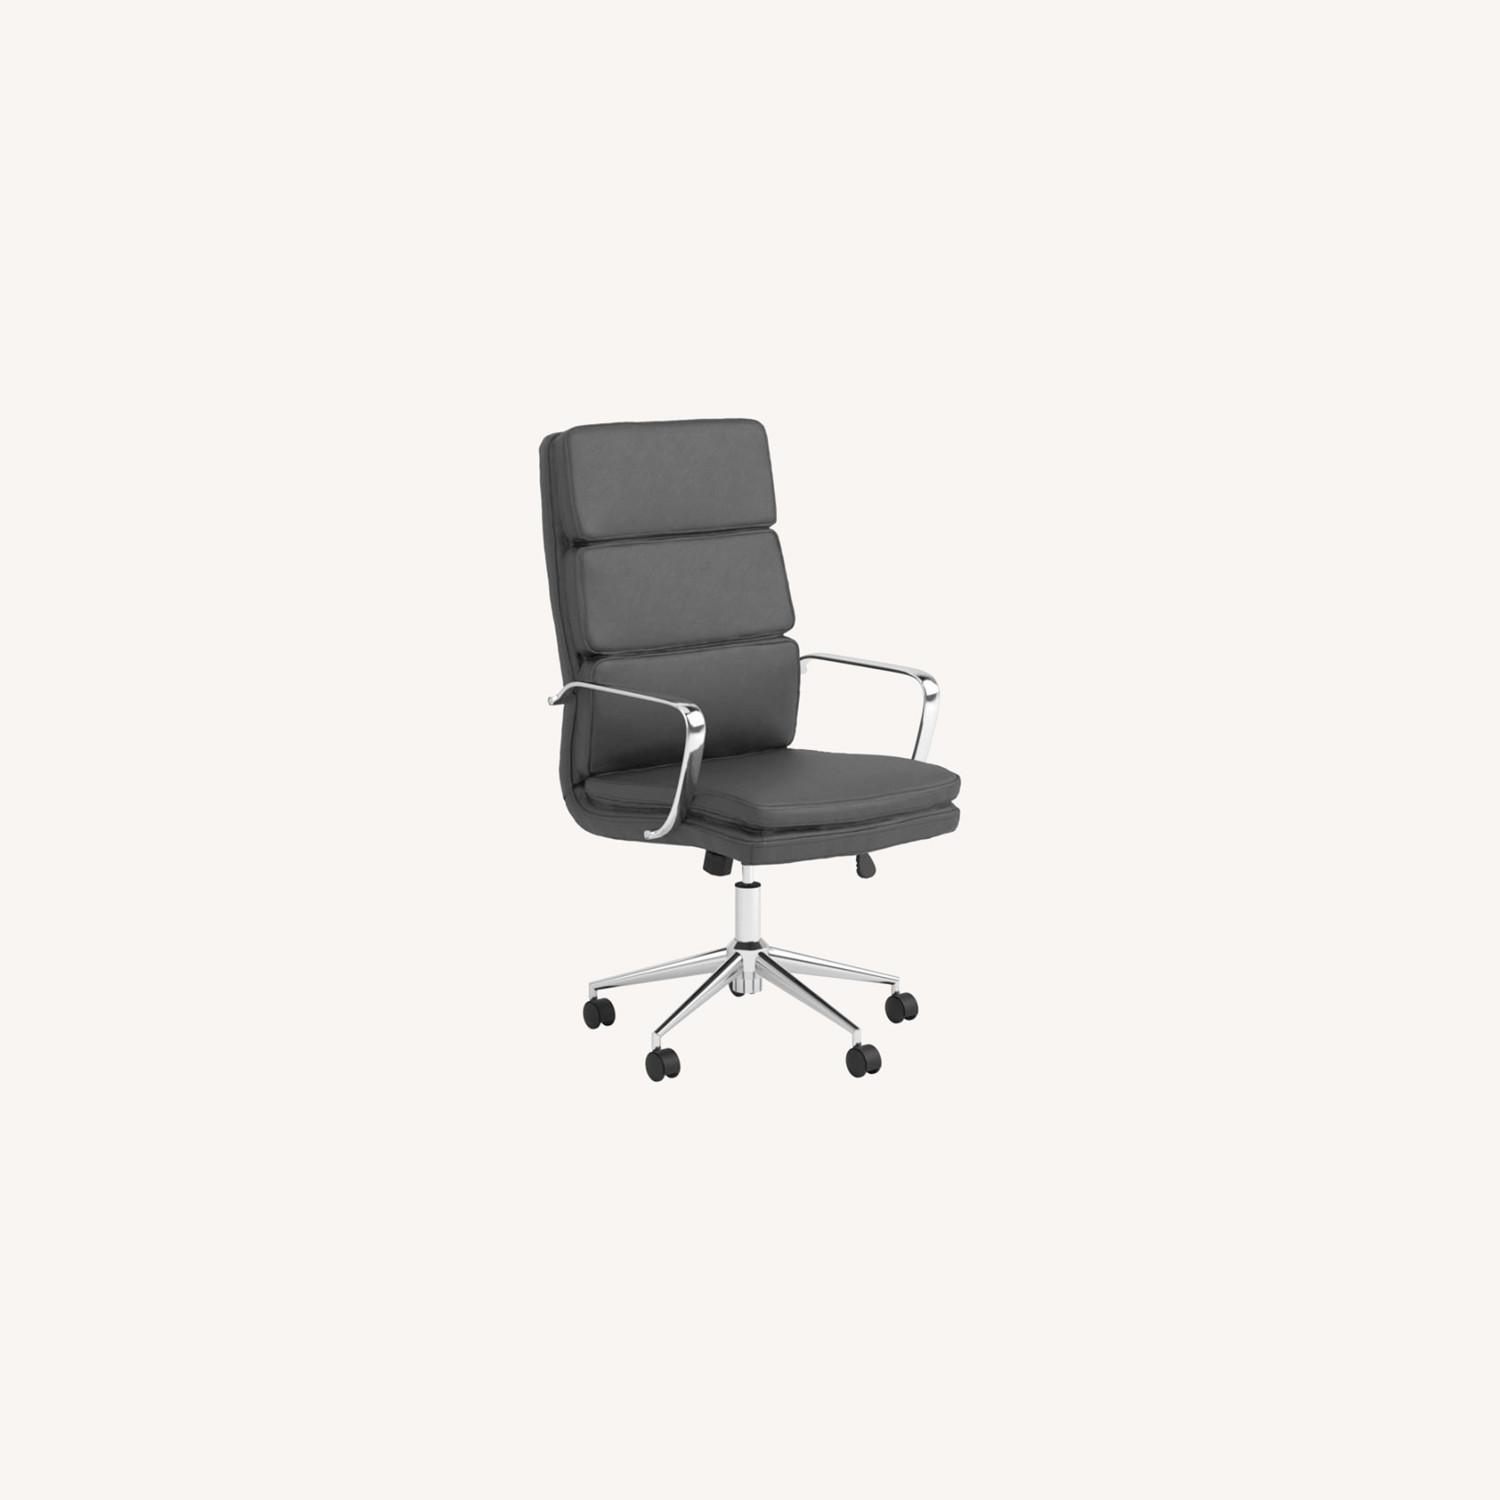 Office Chair In Black Cushion Leatherette Finish - image-8